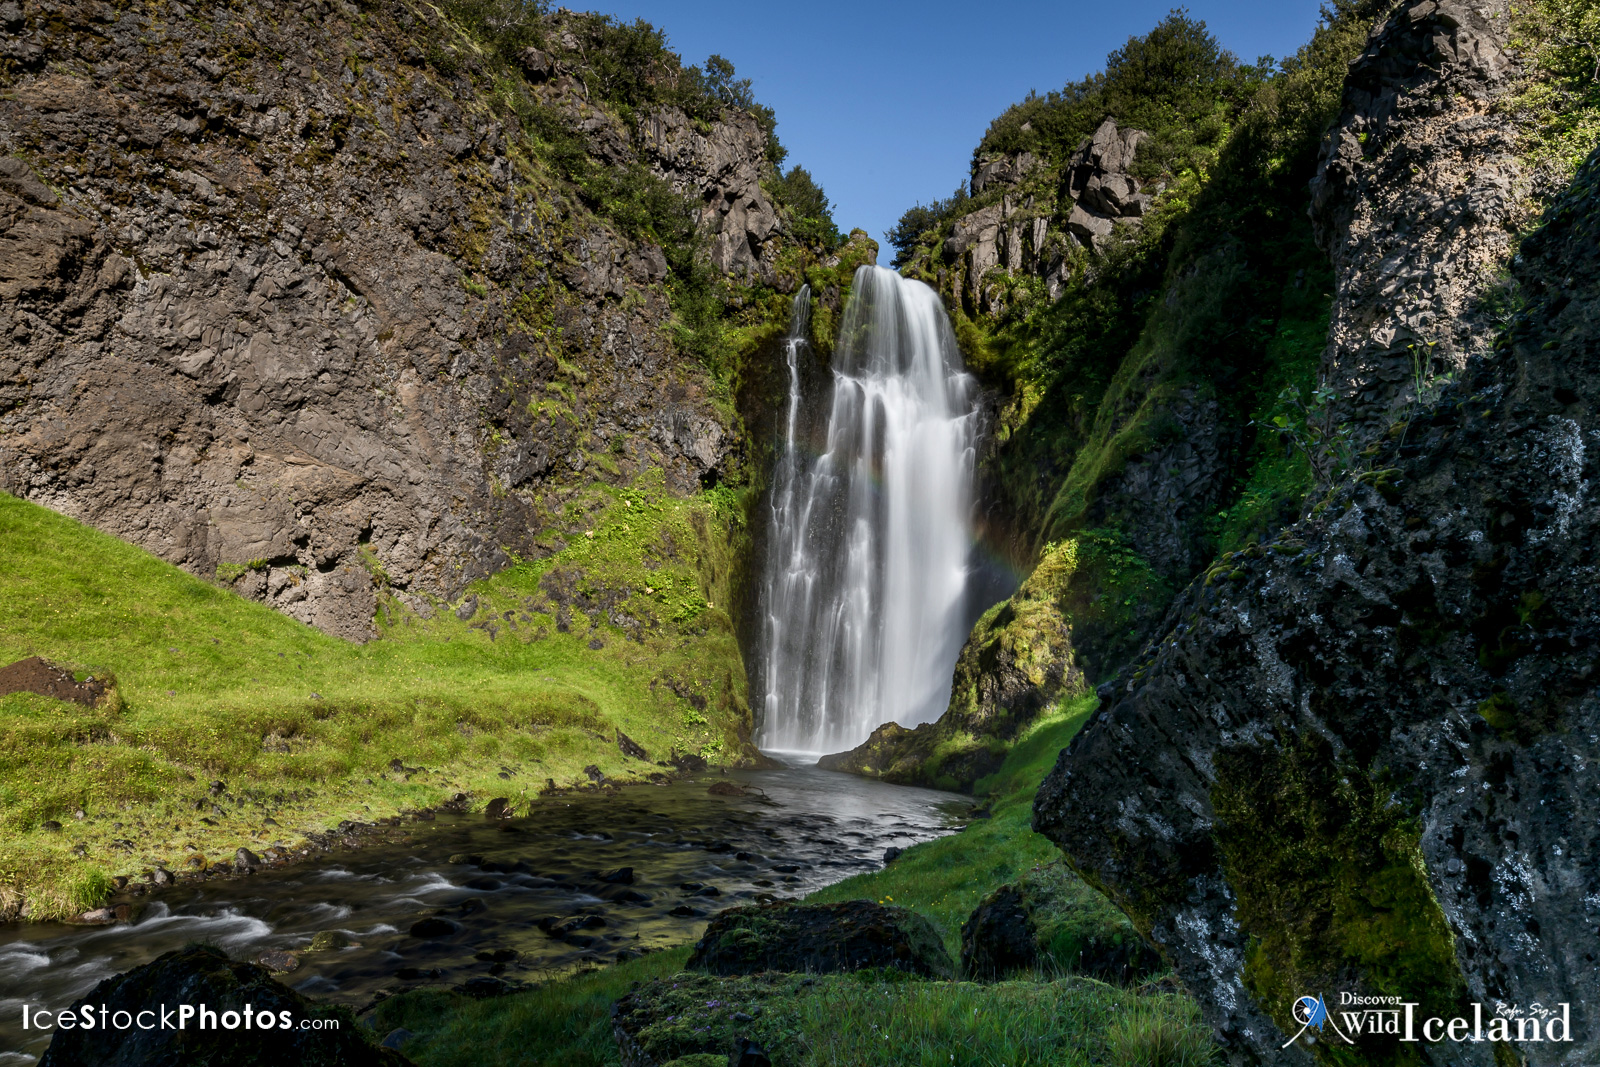 Discover Wild Iceland .is - Documenting this beautiful hidden waterfall in Iceland